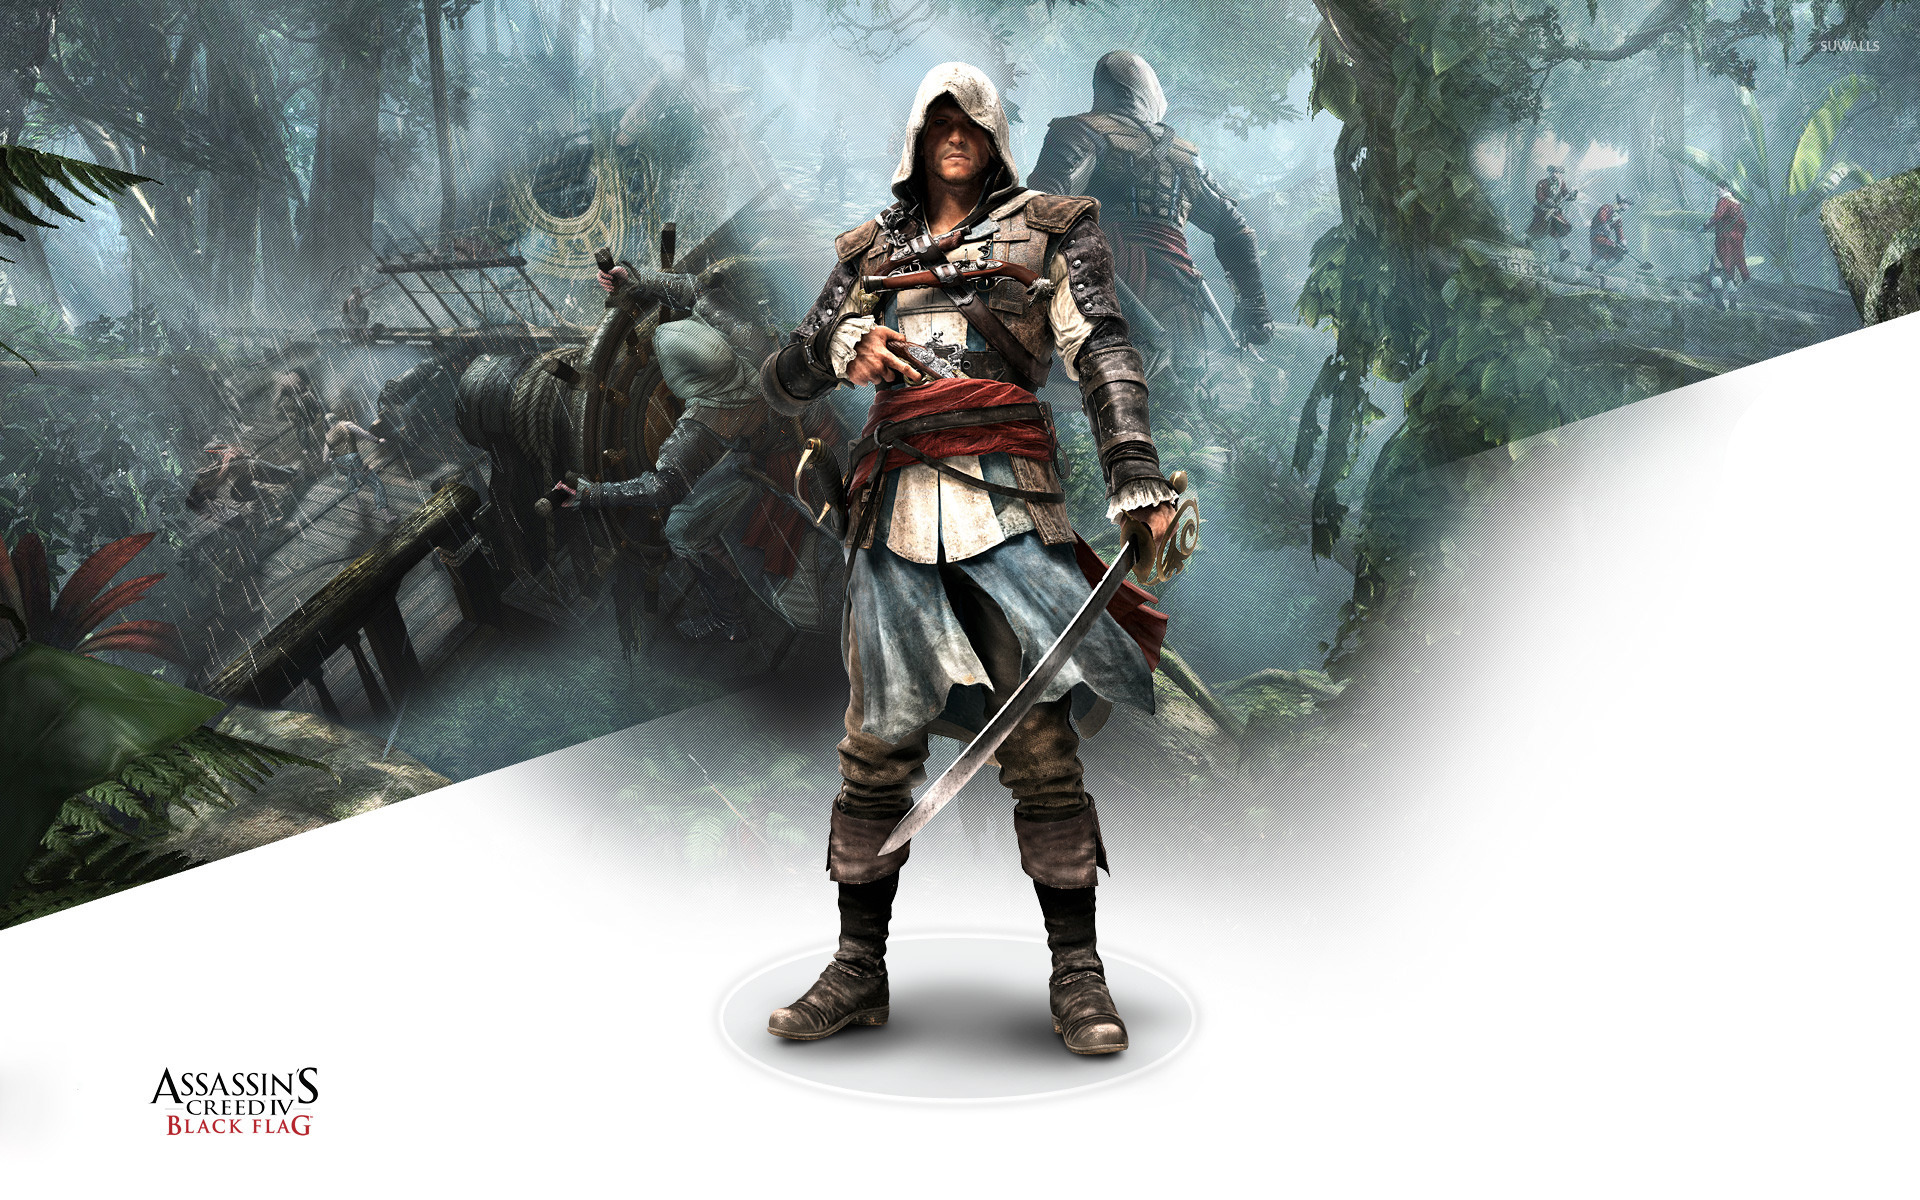 edward kenway assassins creed iv black flag 11 wallpaper 1920x1200 jpg